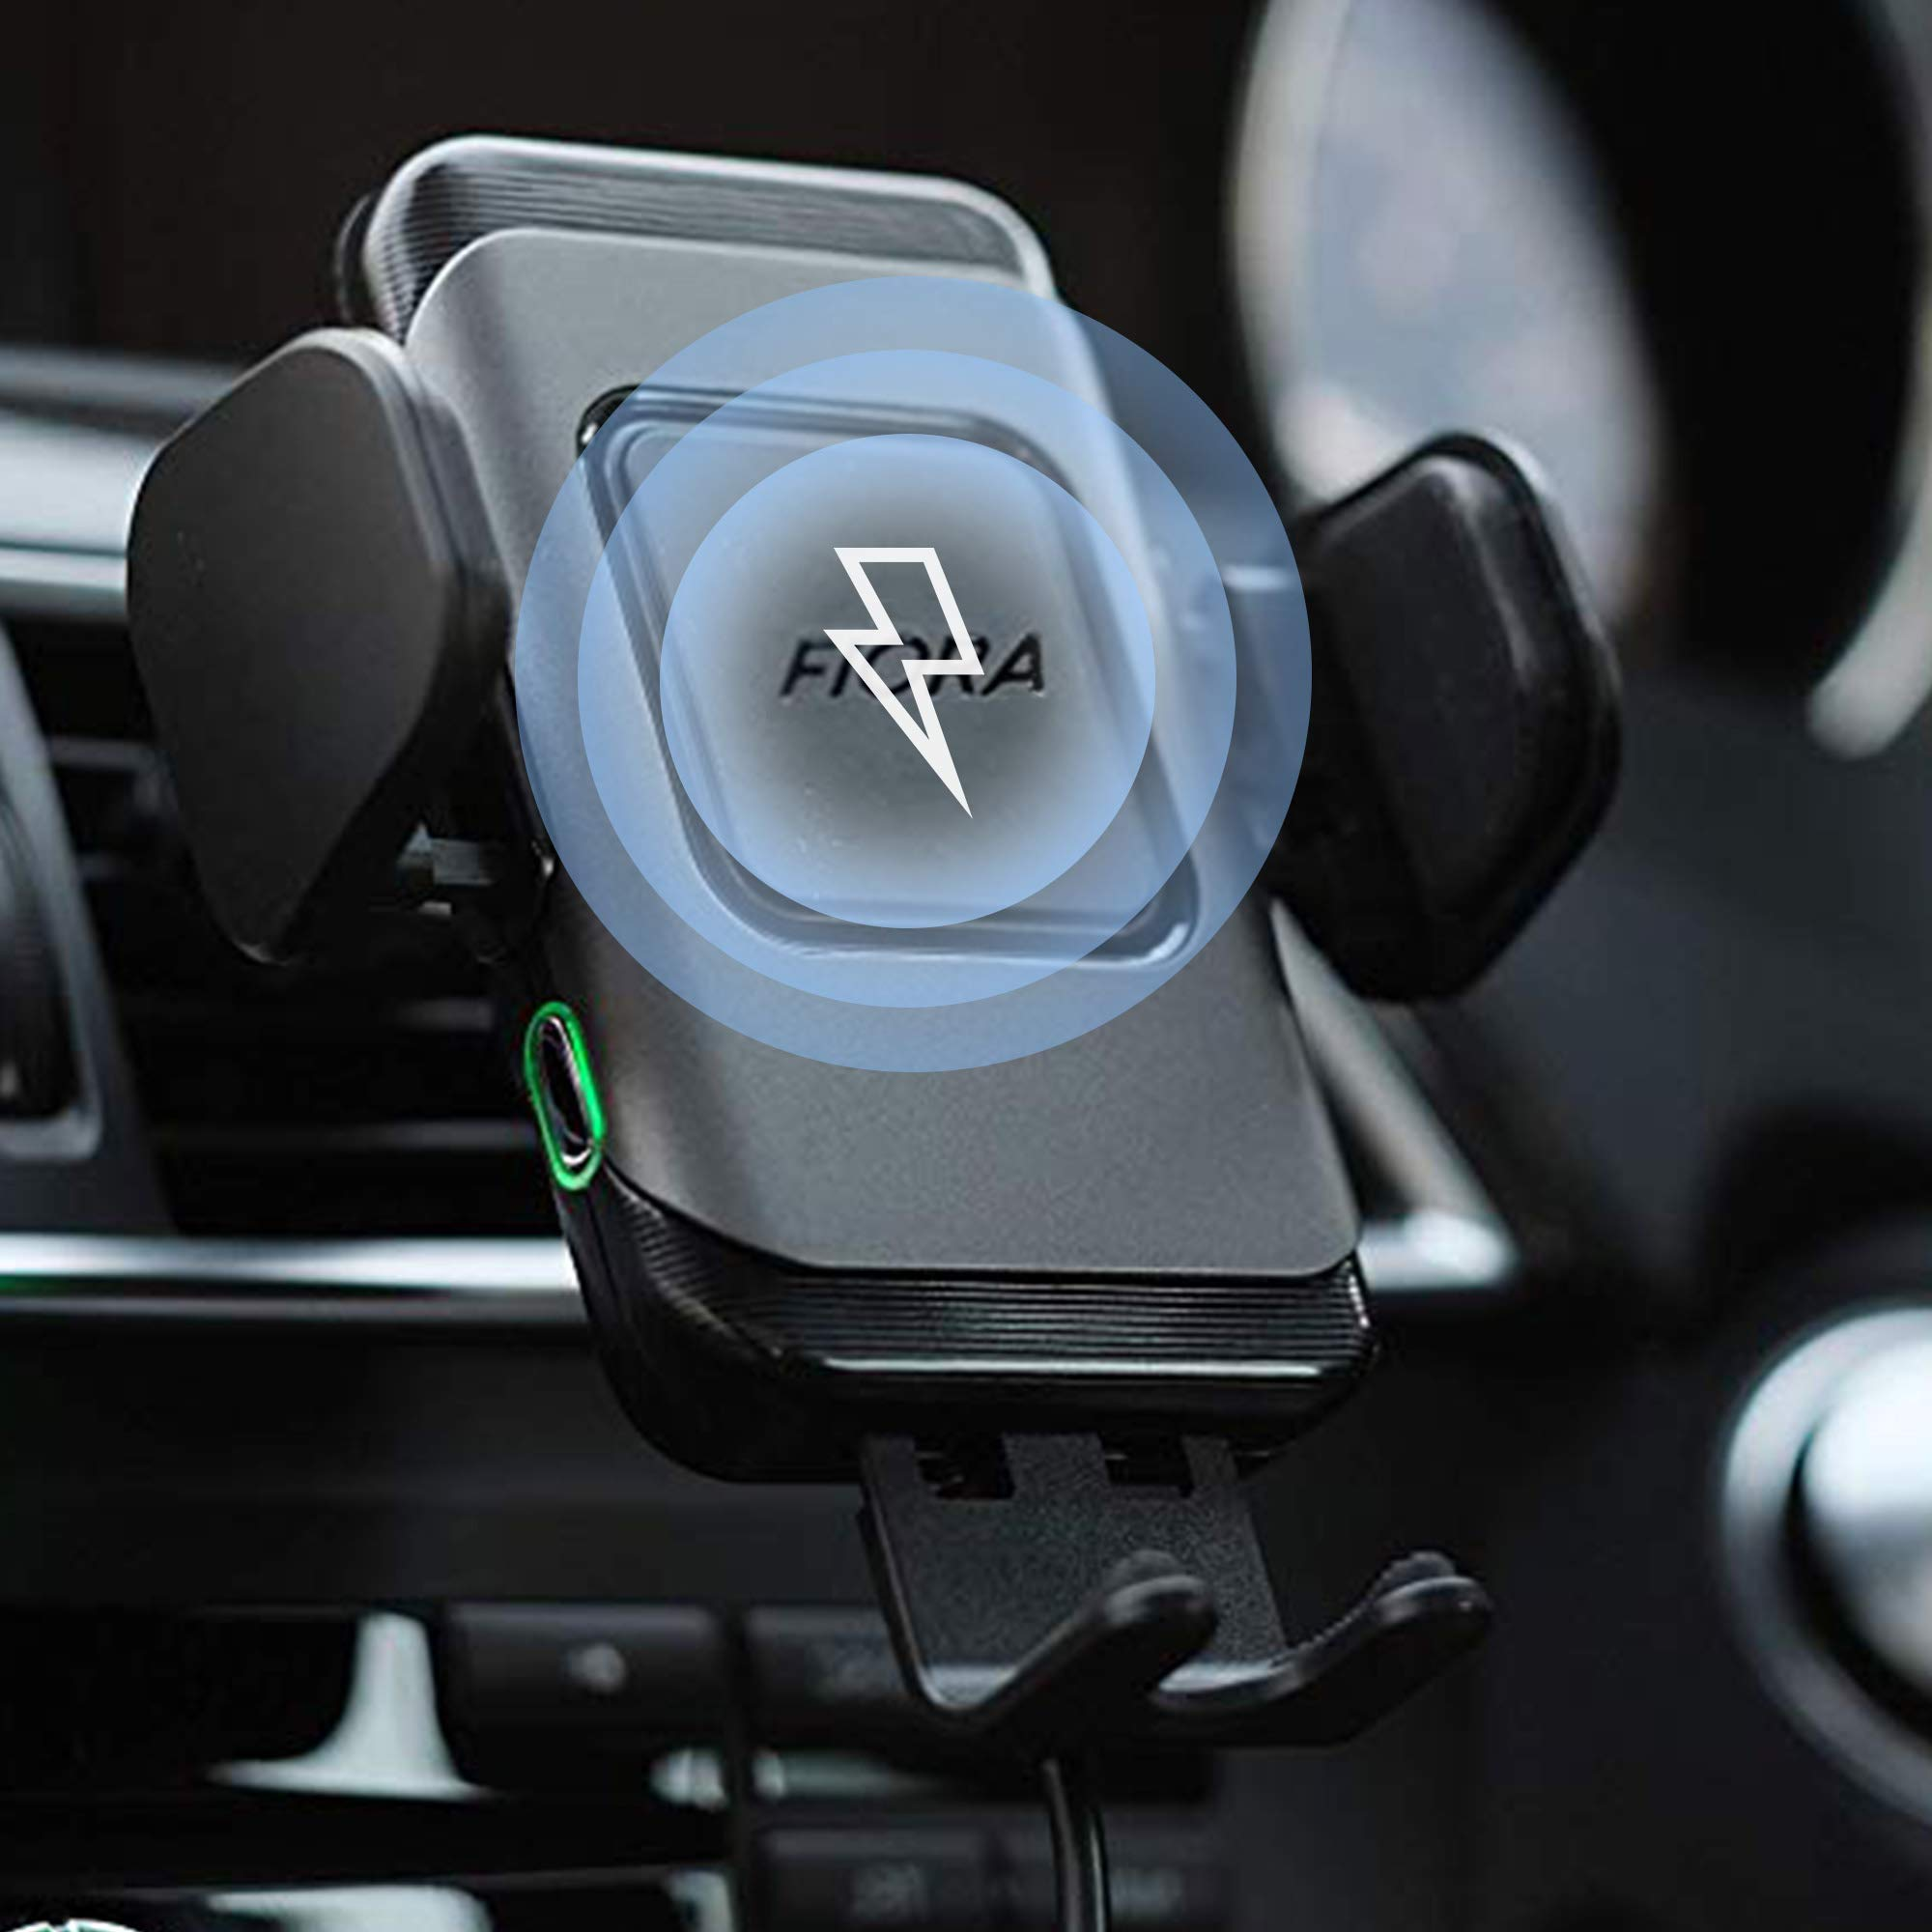 Ultimate Wireless Car Charger by Fiora 15W Qi Wireless Fast Charge QC 3.0 Adapter Automatic Clamping Phone Mount Holder Compatible iPhone Xs Max/XS/XR/X/8/8 Plus, Samsung Galaxy Note 9/S10/S9/S8, LG by FIORA